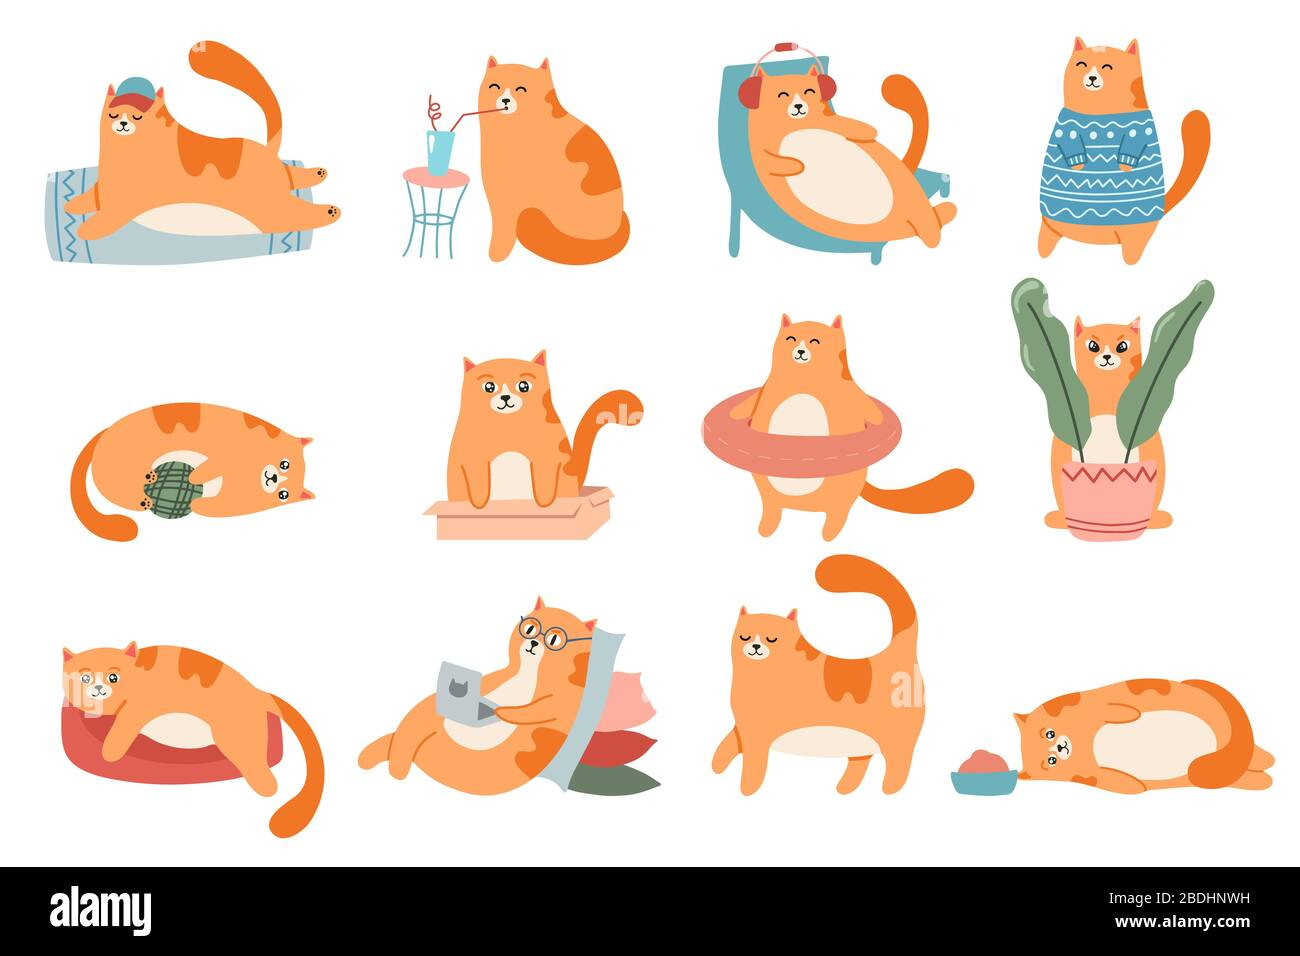 Cute Cats Cat In Box Adorable Red Kitty Sleeping And Fat Cat In Fur Sweater Vector Illustration Set Domestic Animal Lifestyle Comic Pet In Glasses Stock Vector Image Art Alamy